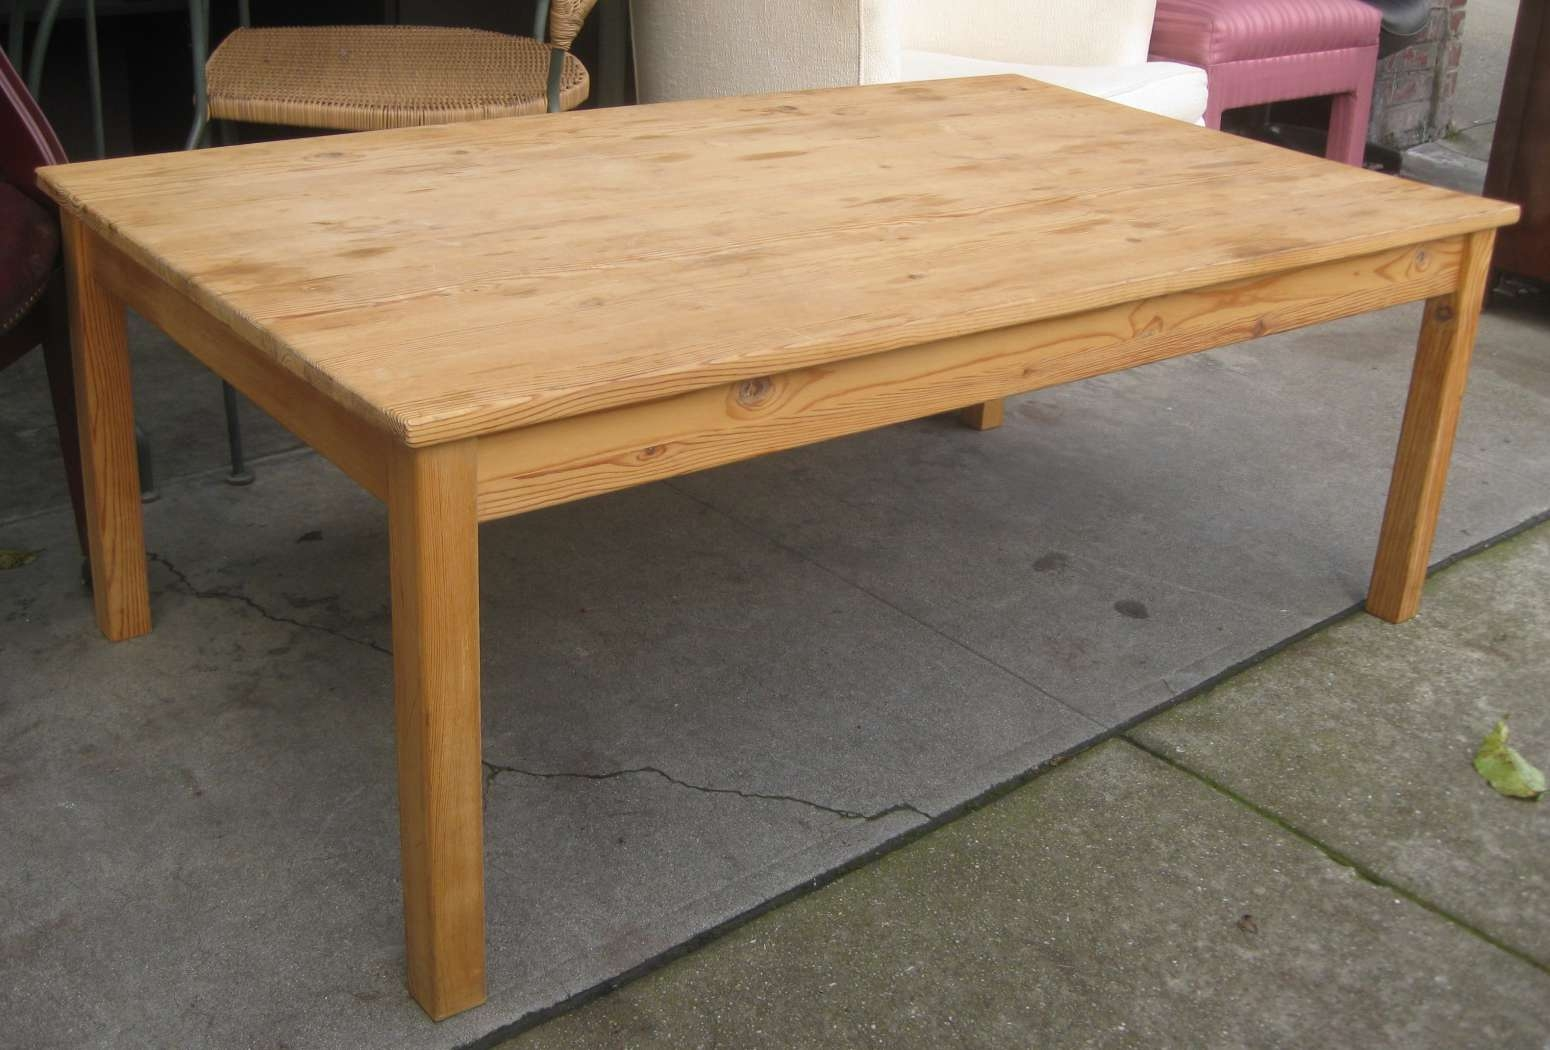 Uhuru Furniture & Collectibles: Sold – Pine Coffee Table – $25 Pertaining To Widely Used Pine Coffee Tables (Gallery 9 of 20)